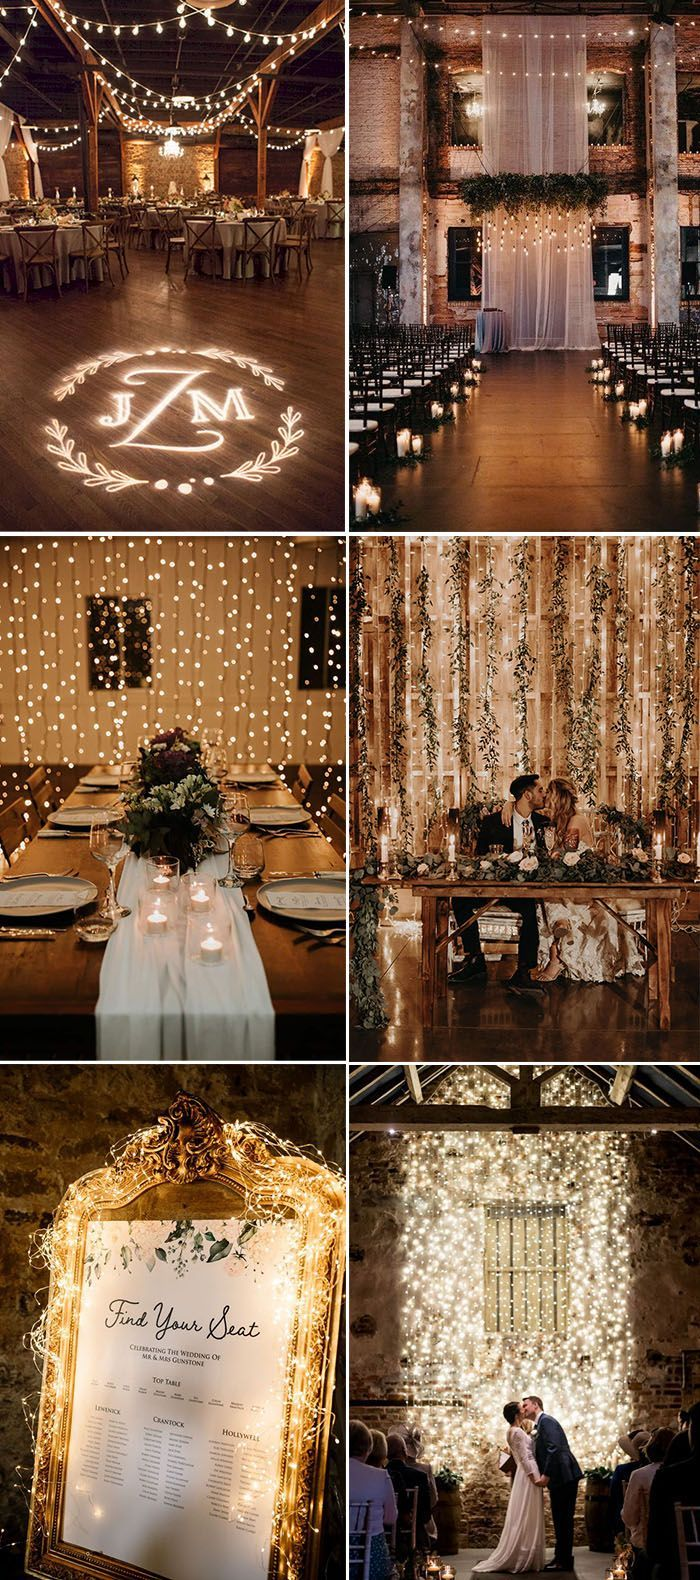 30 Creative Wedding Lighting Ideas To Make Your Big Day Swoon Elegantweddinginvites Com In 2020 Indoor Wedding Decorations Indoor Wedding Receptions Wedding Lights